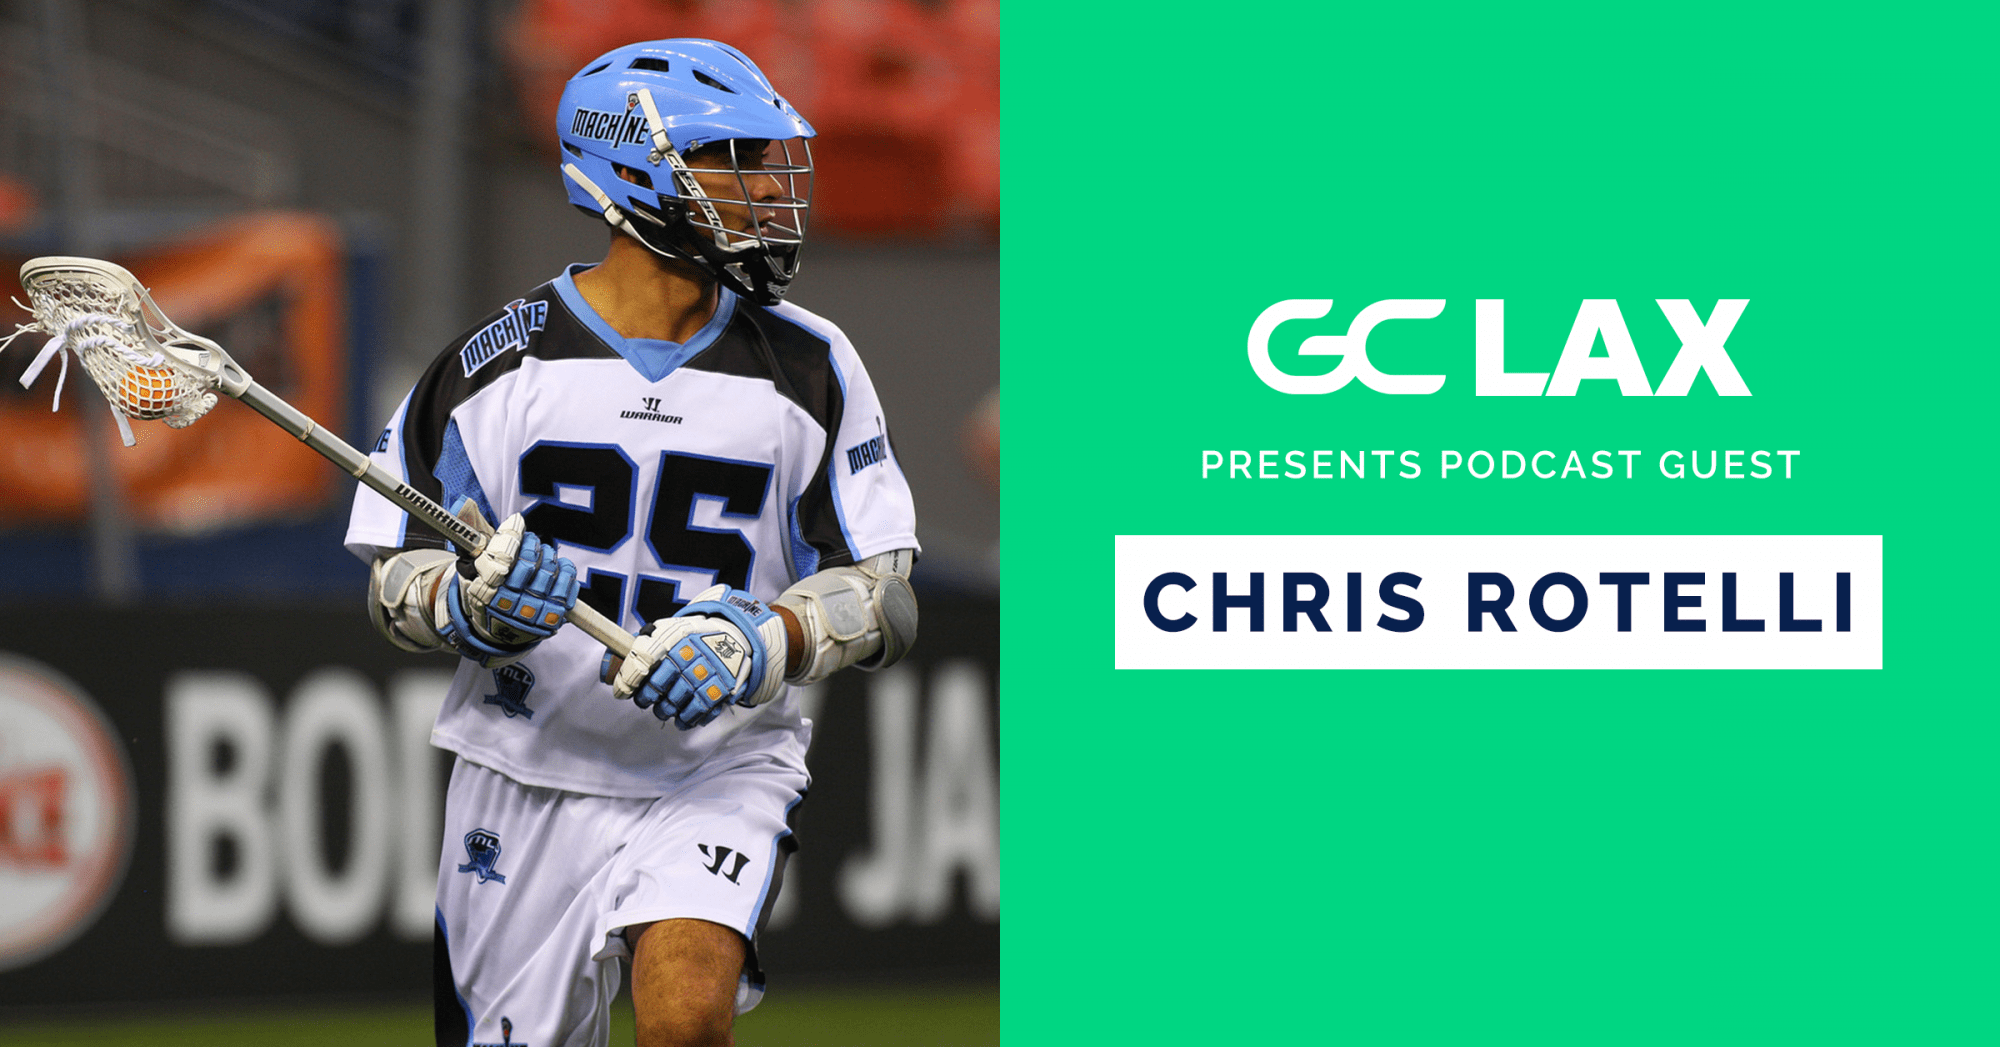 GCLax Podcast Chris Rotelli